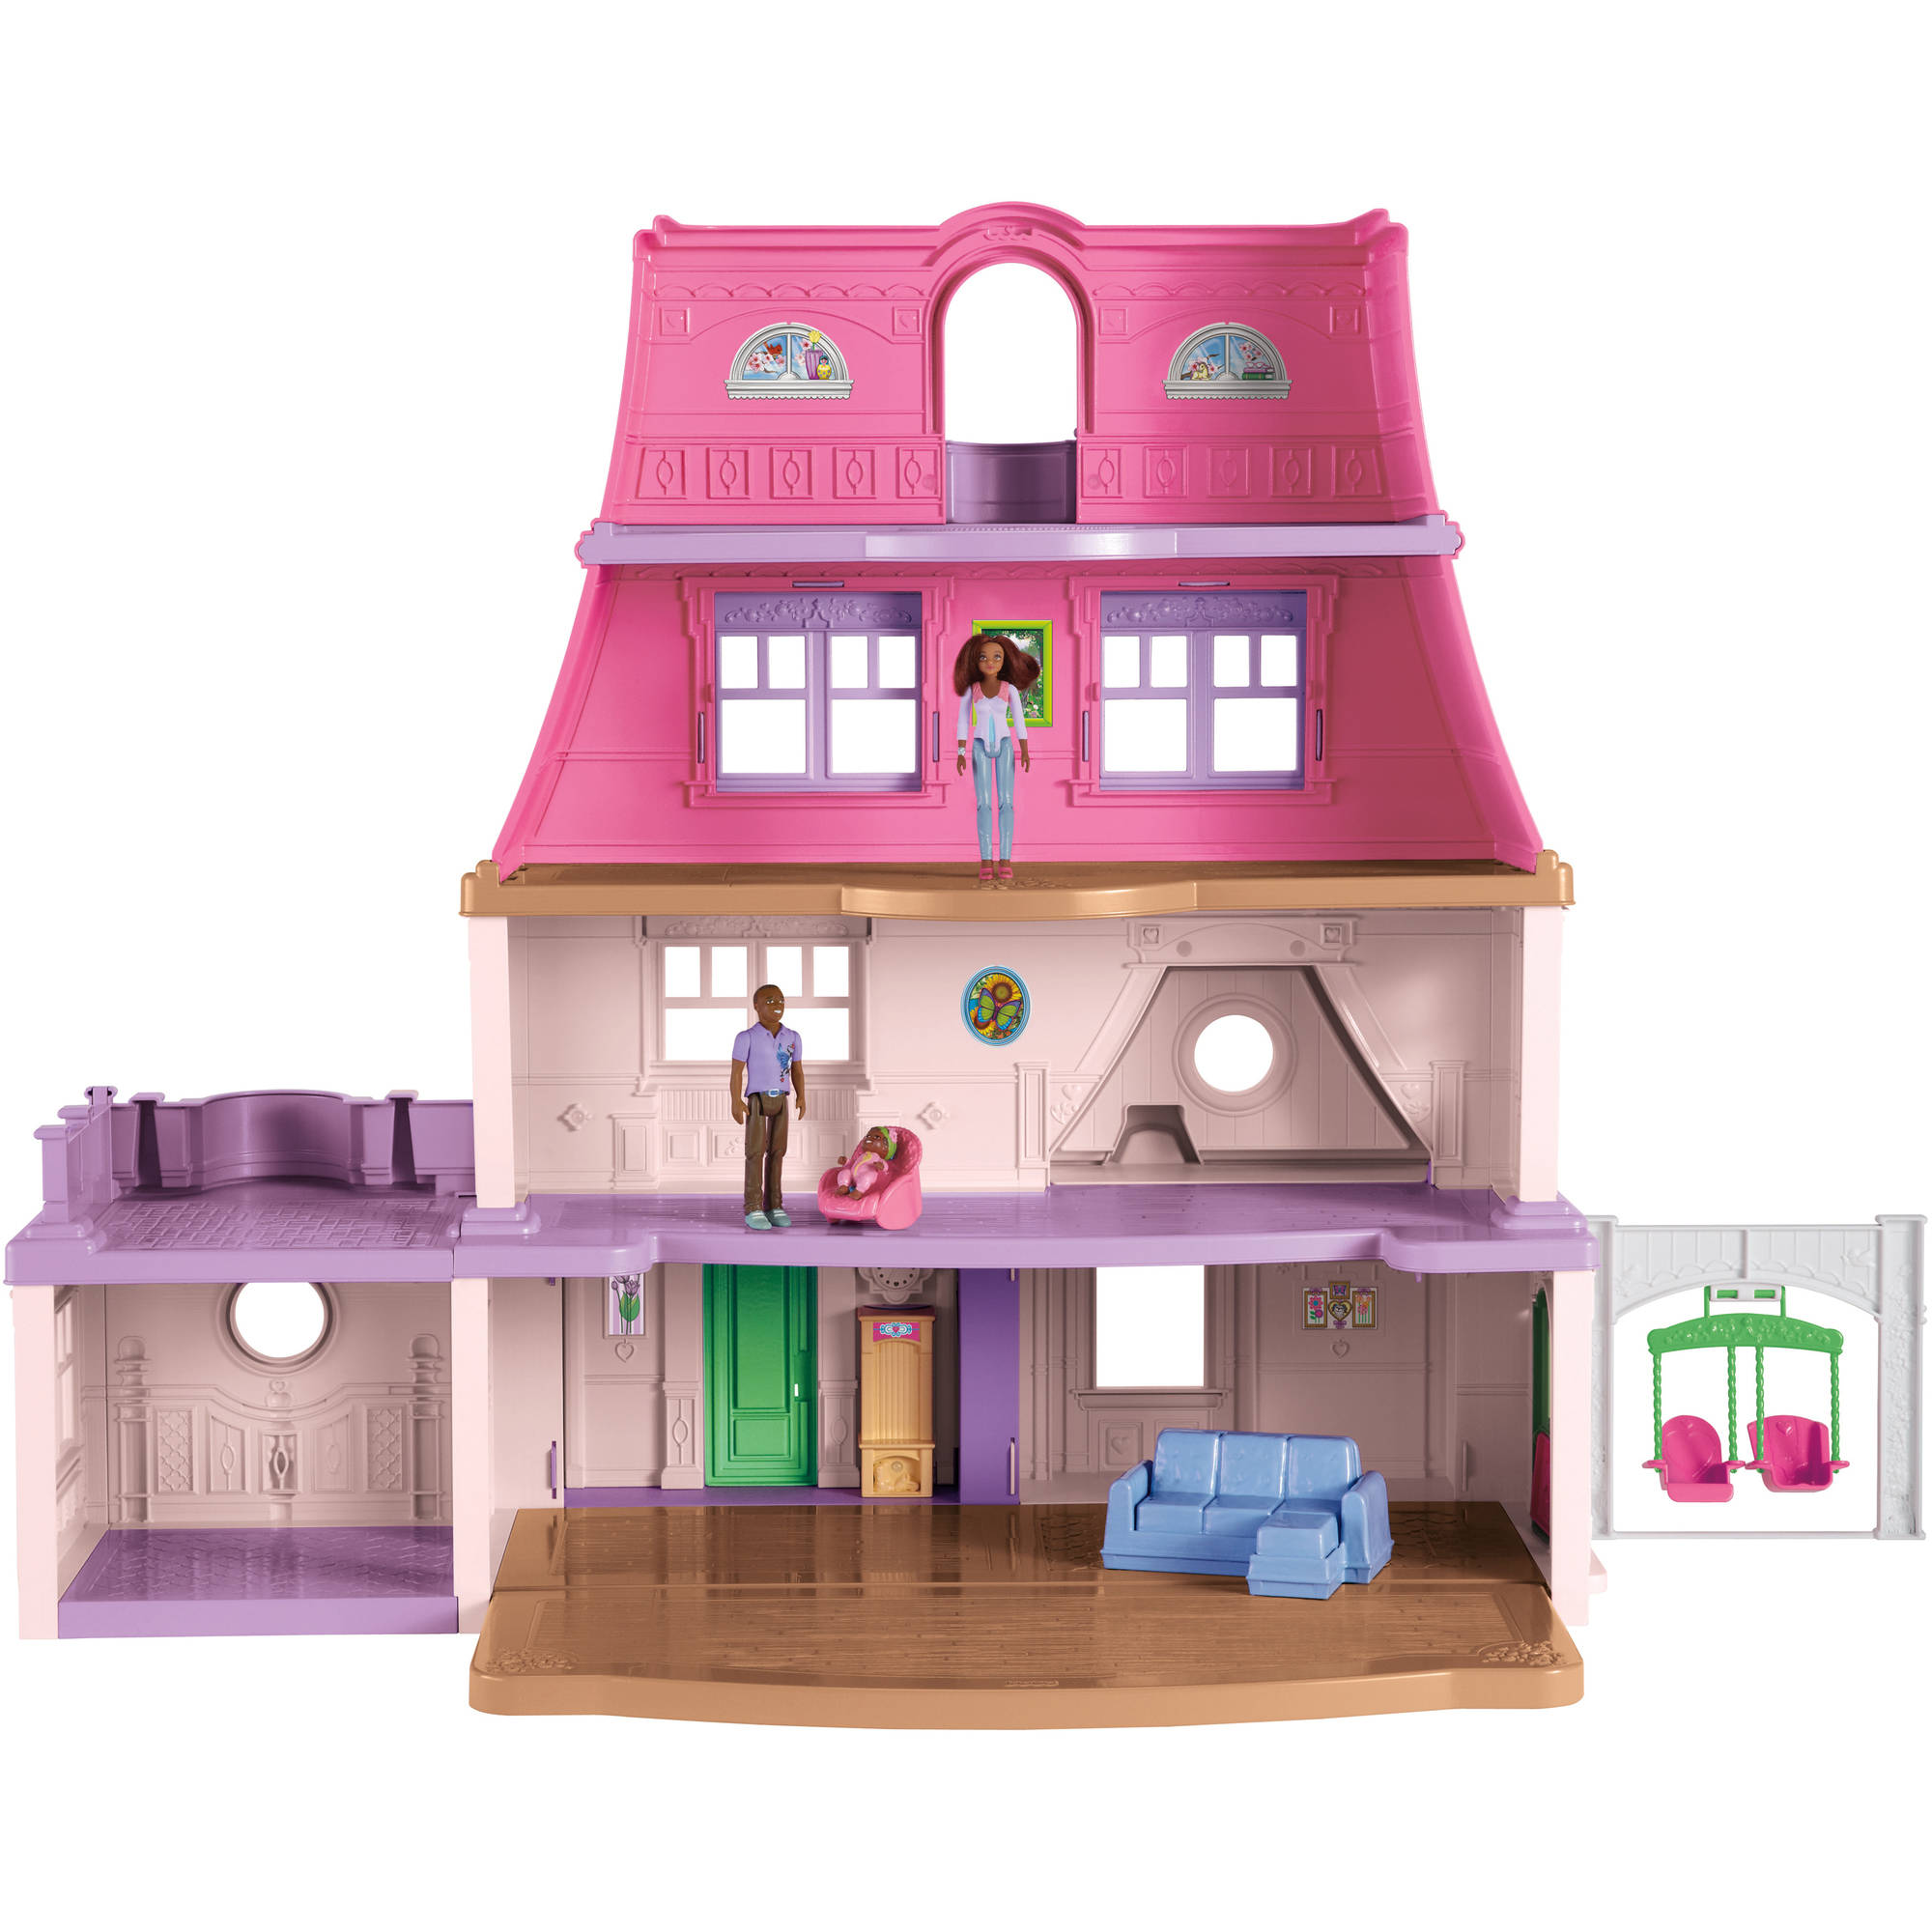 Fisher price doll house furniture - Fisher Price Loving Family Dollhouse African American Multi Colored Walmart Com